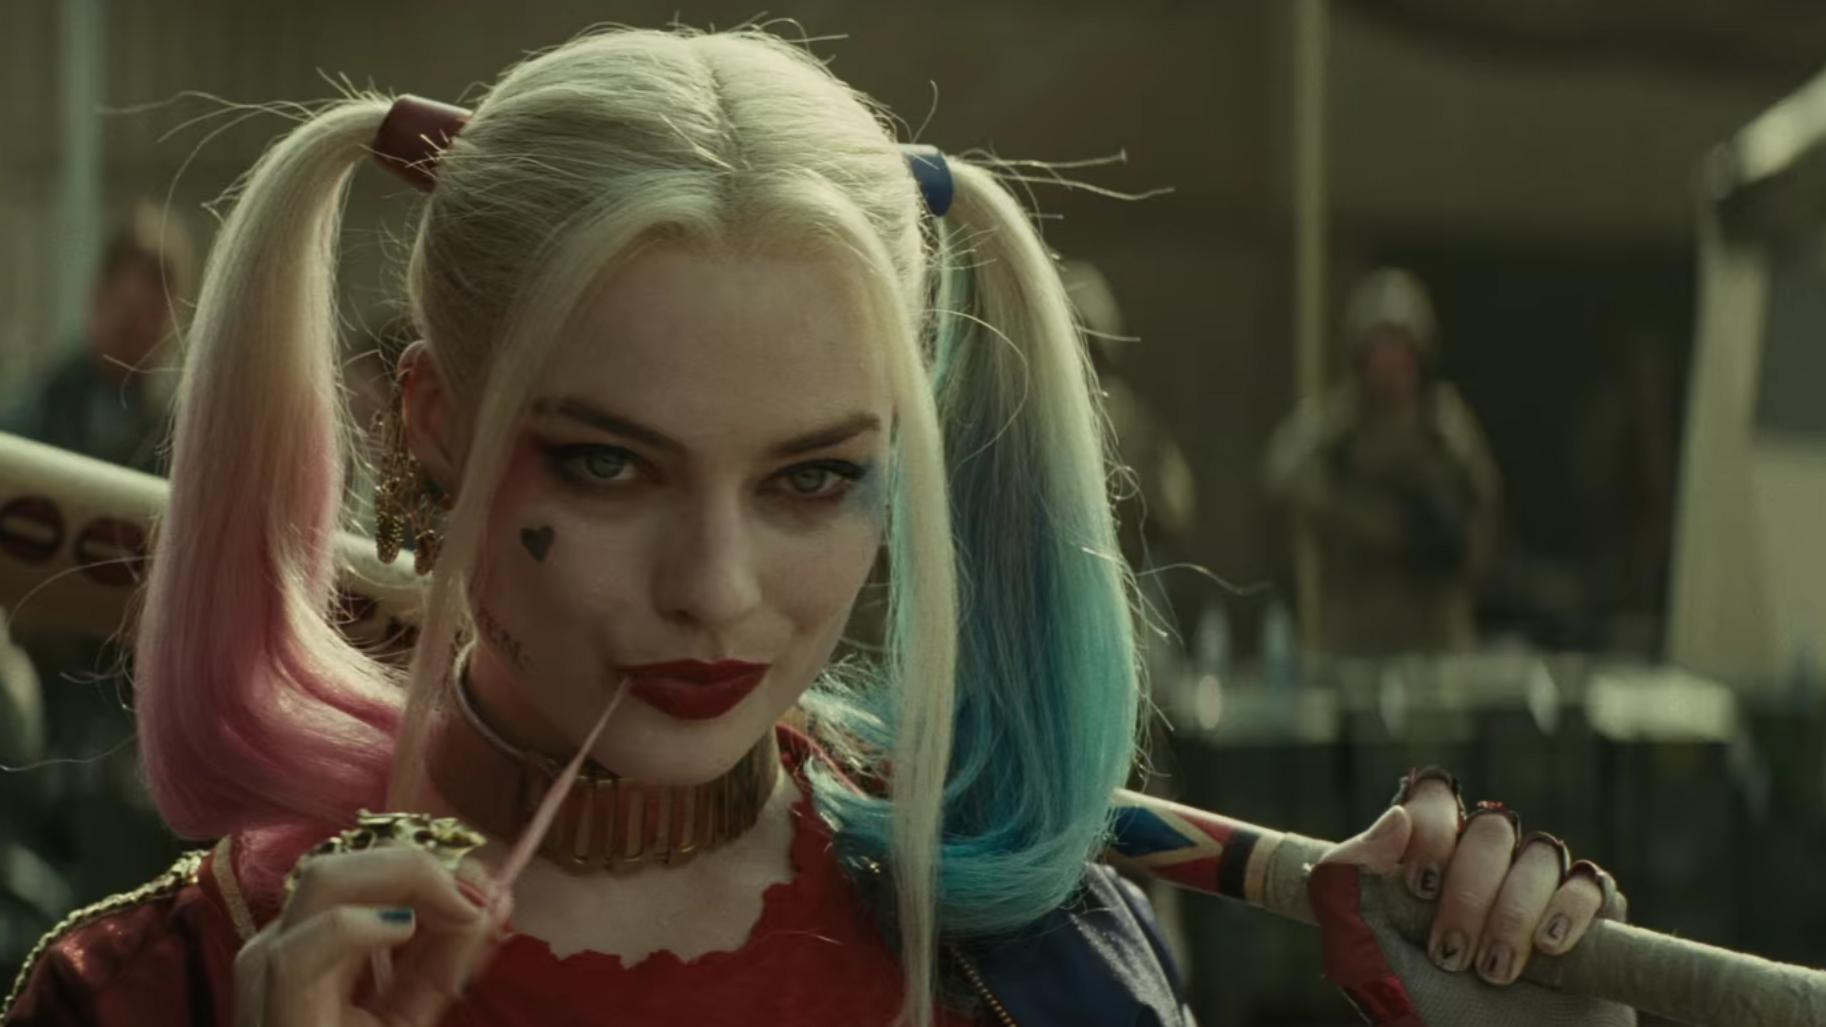 Image result for suicide squad robbie harley quinn